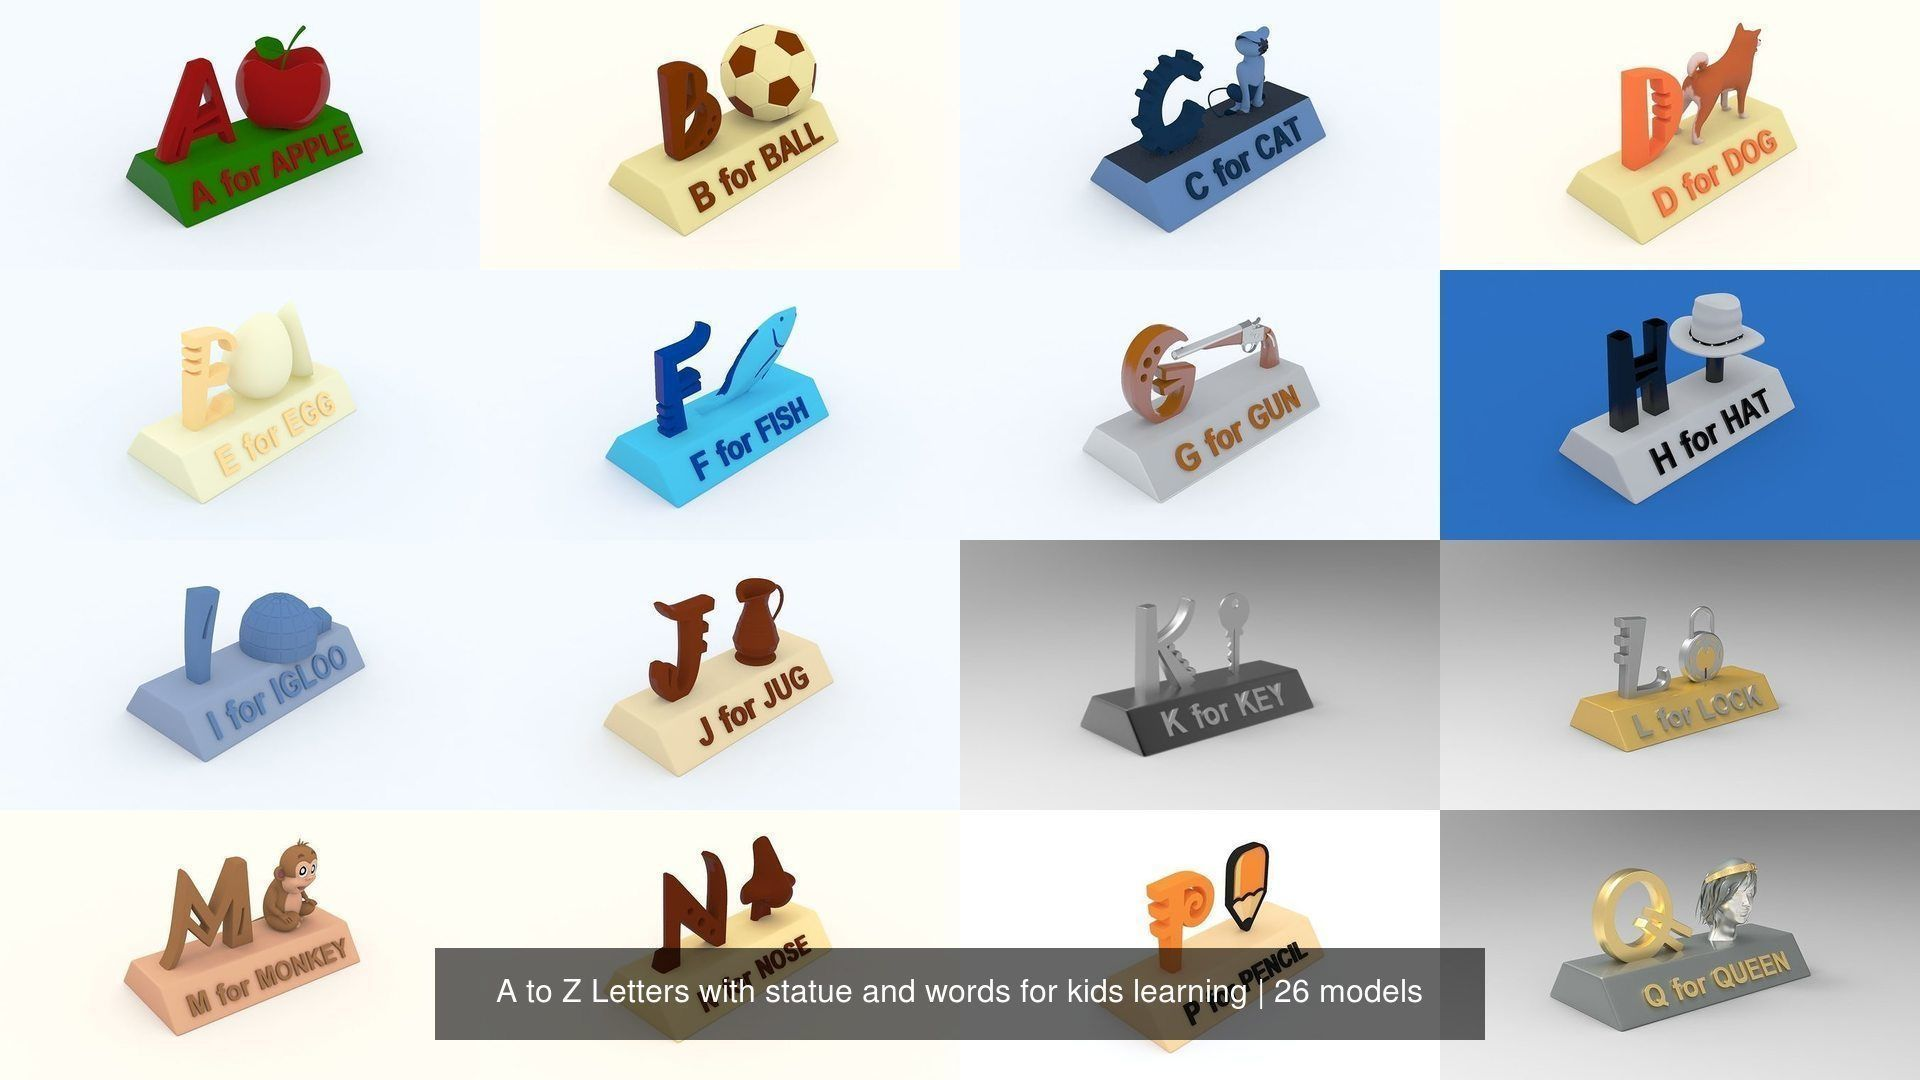 A to Z Letters with statue and words for kids learning